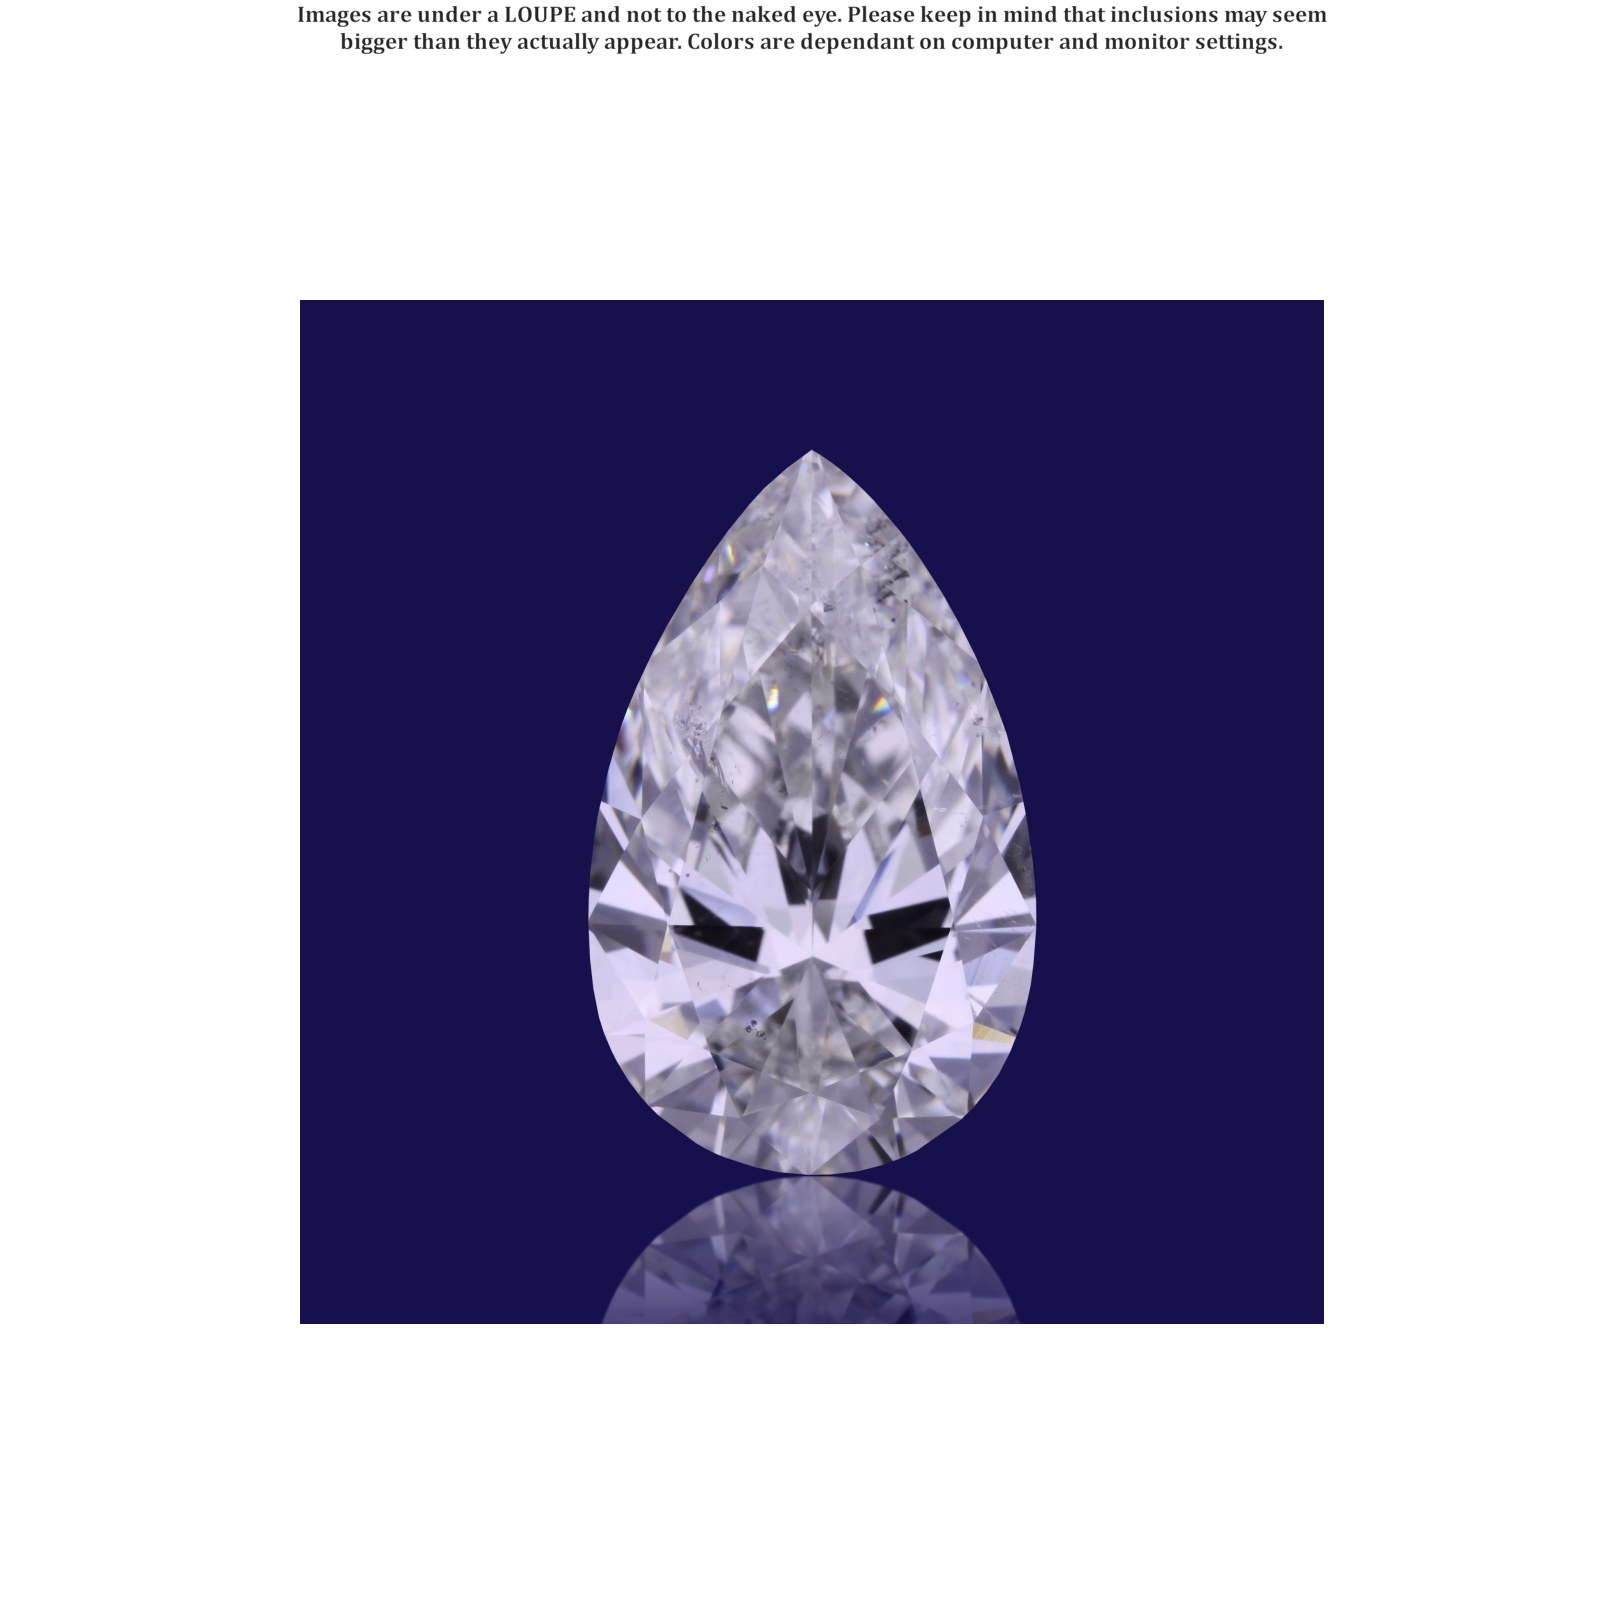 Quality Jewelers - Diamond Image - .00742